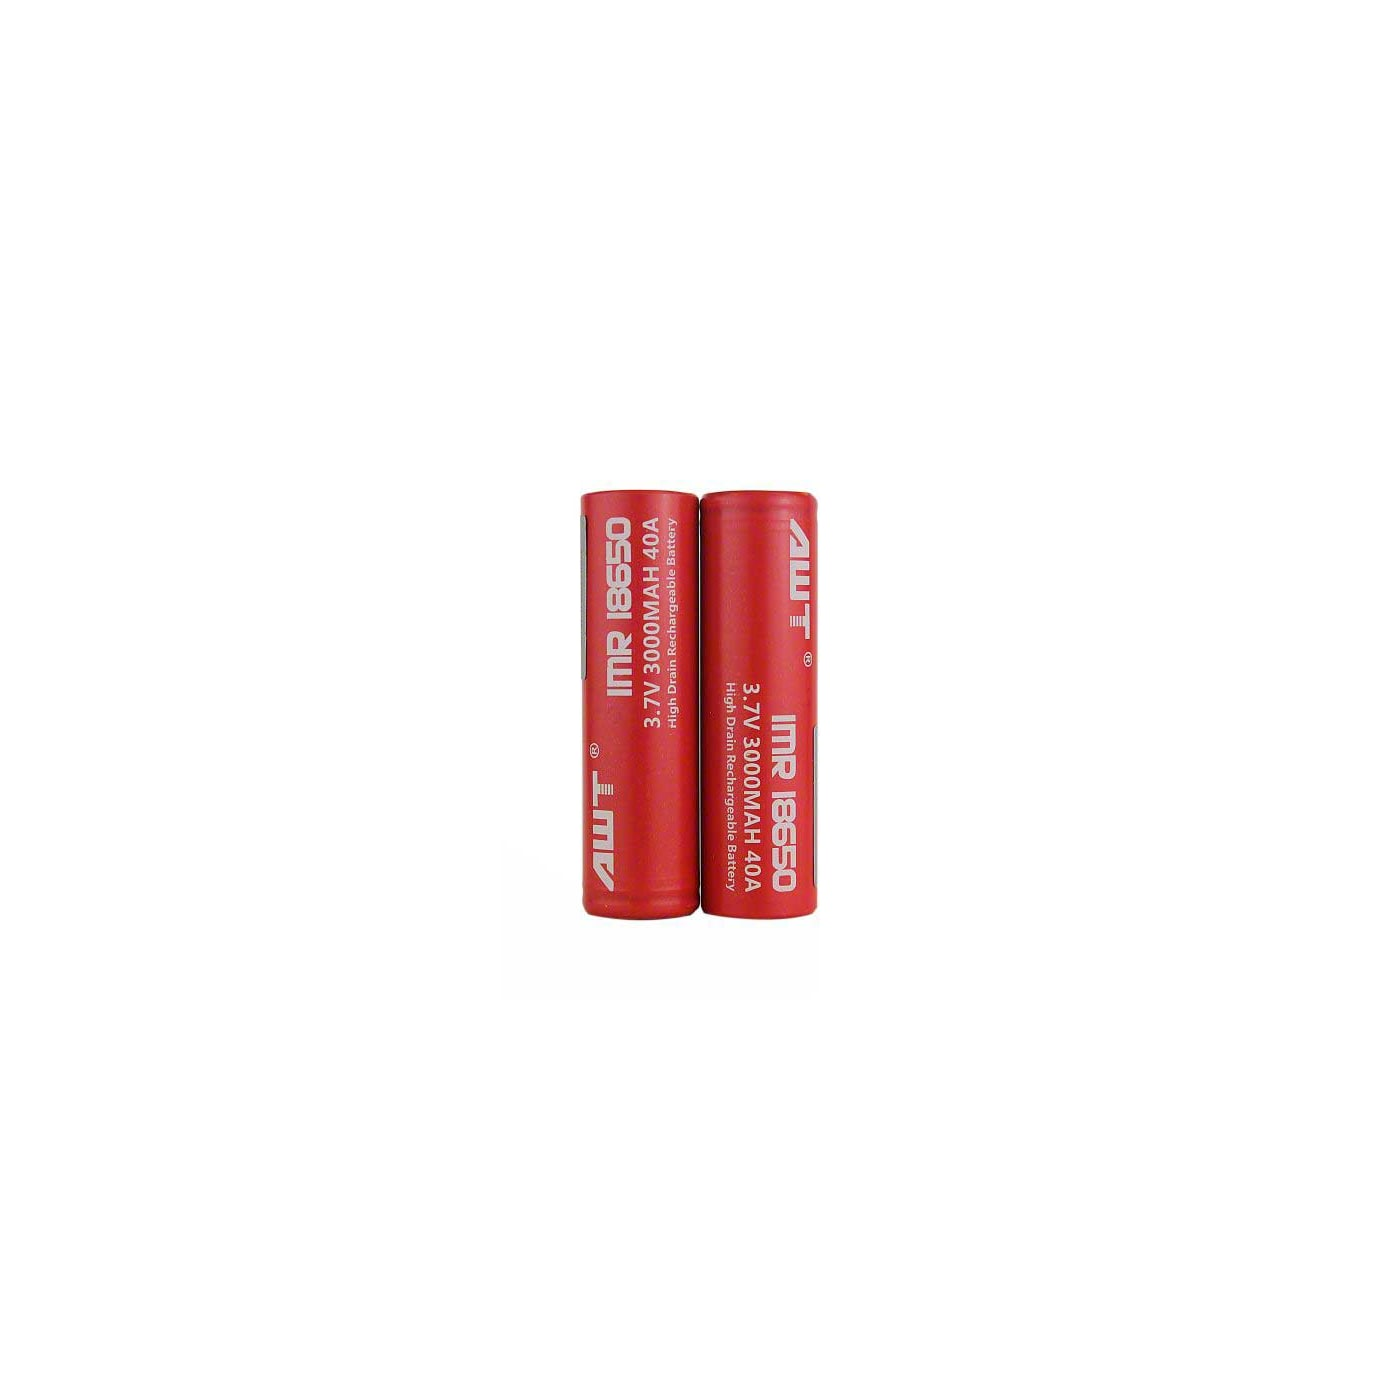 AWT 18650 40A 3000 mAh  Battery - 2 Pack